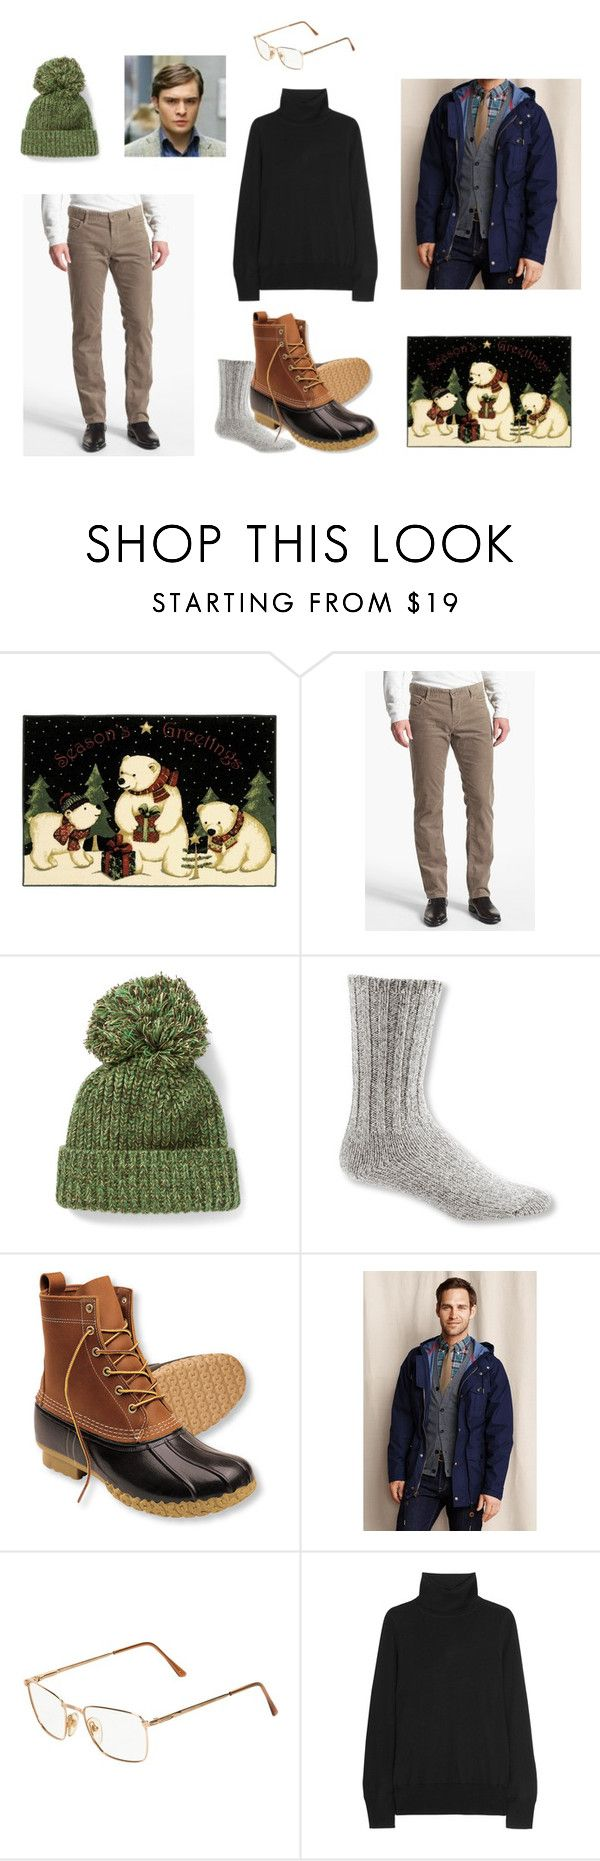 """Duck, duck boots"" by thehopefulpioneer ❤ liked on Polyvore featuring BOSS Orange, Richard James, L.L.Bean, Lands' End, Persol, J.Crew, men's fashion and menswear"